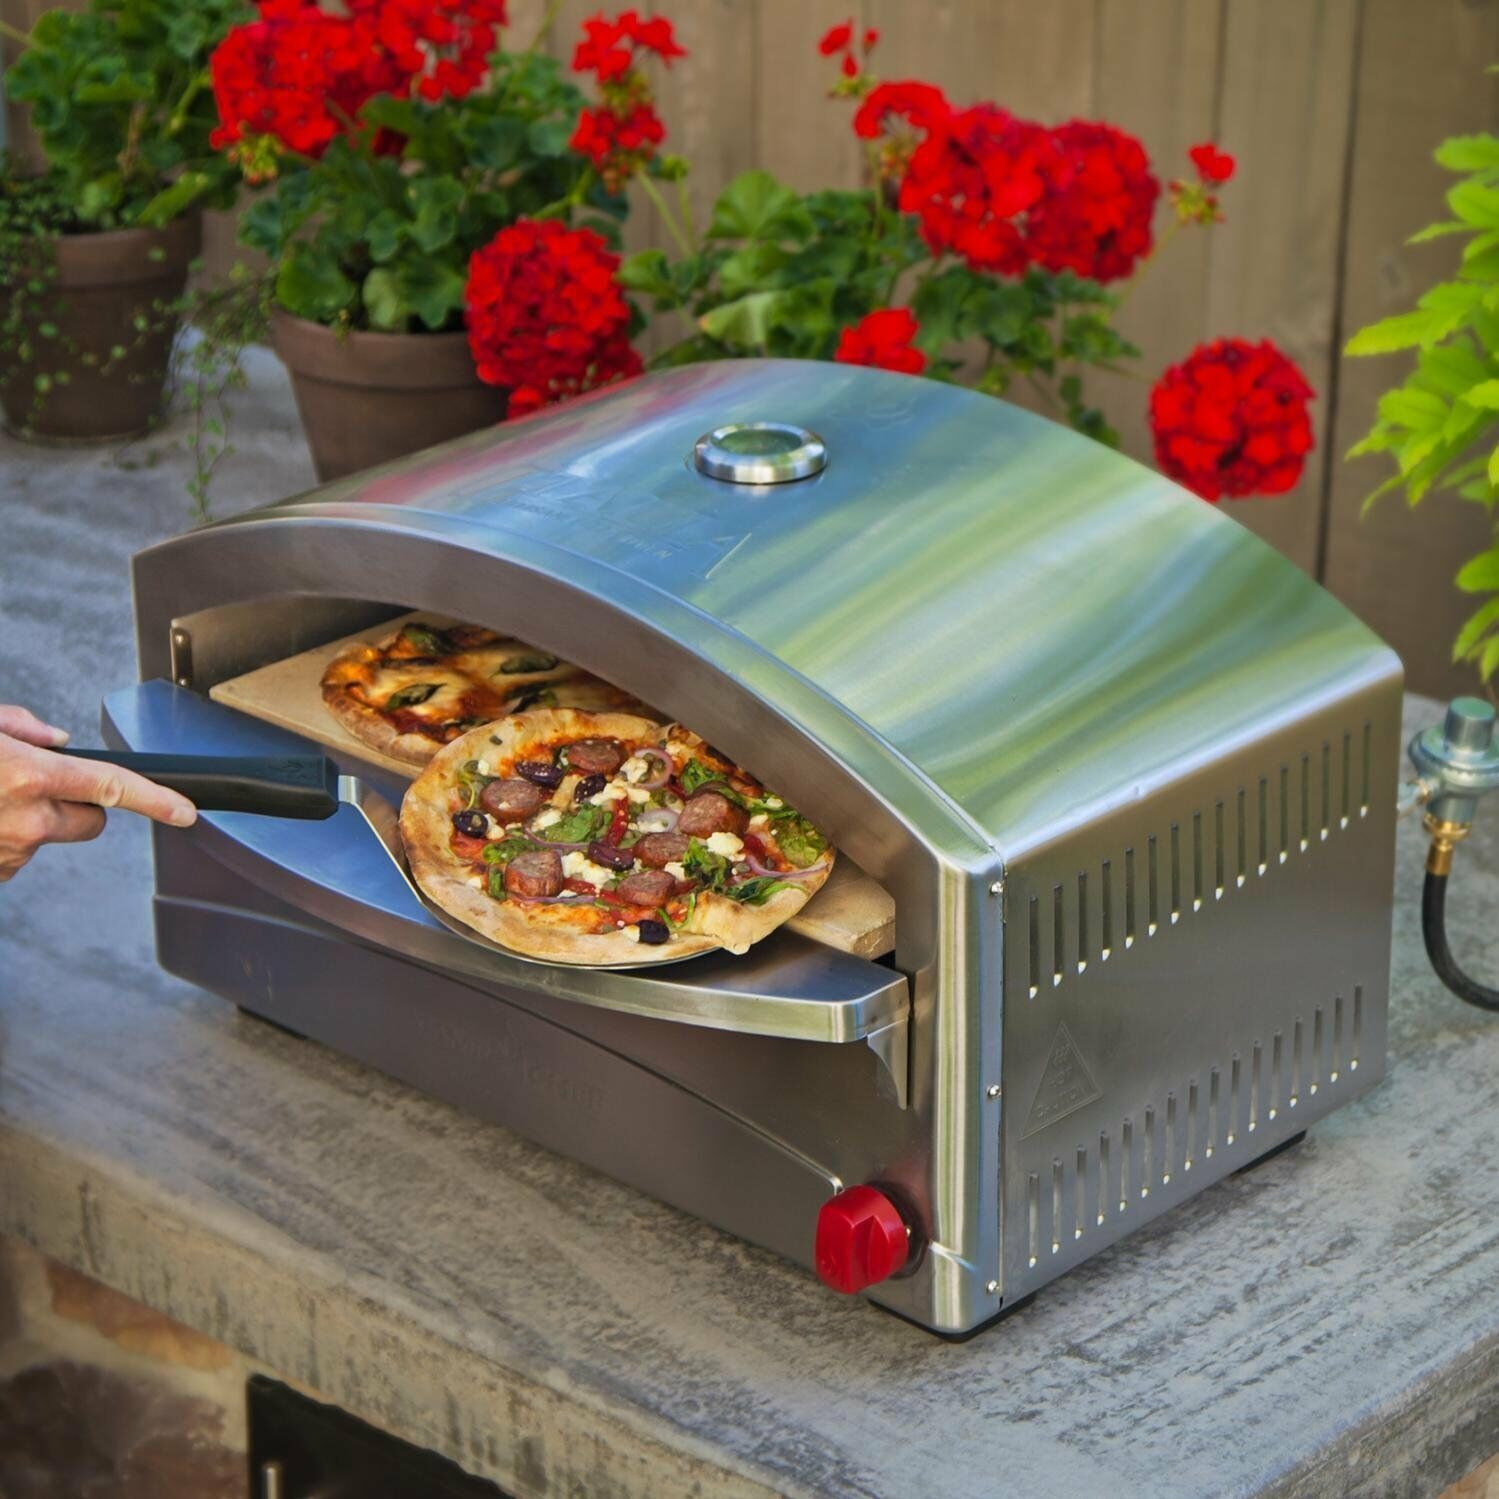 Portable Artisan Style Pizza Oven Outdoor Cooking Burner 17K BTU Propane Patio